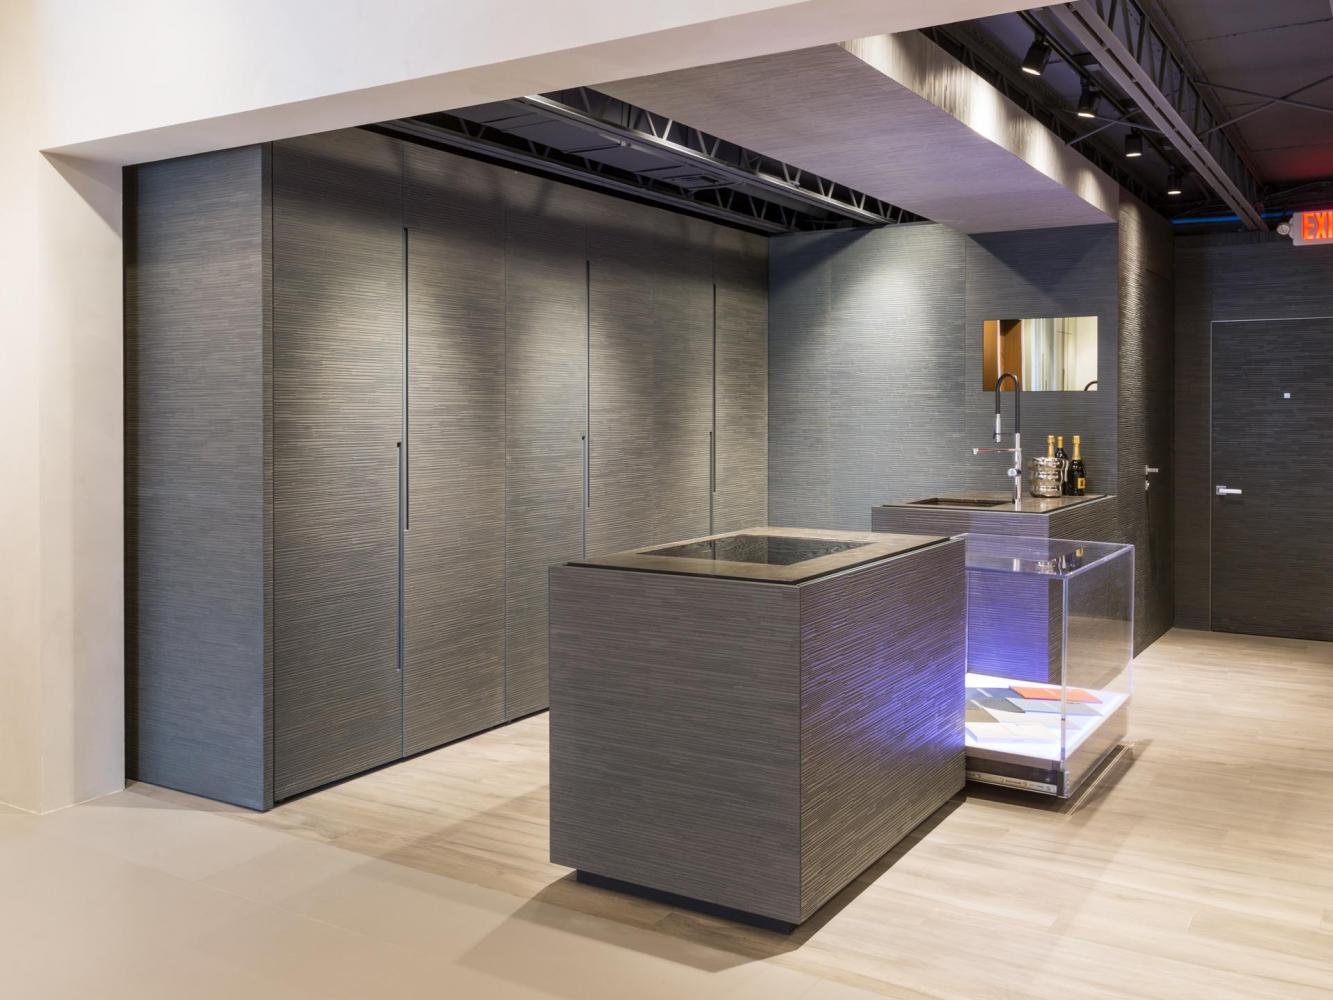 laurameroni bellagio bespoke modern kitchen in aniline dyed wood